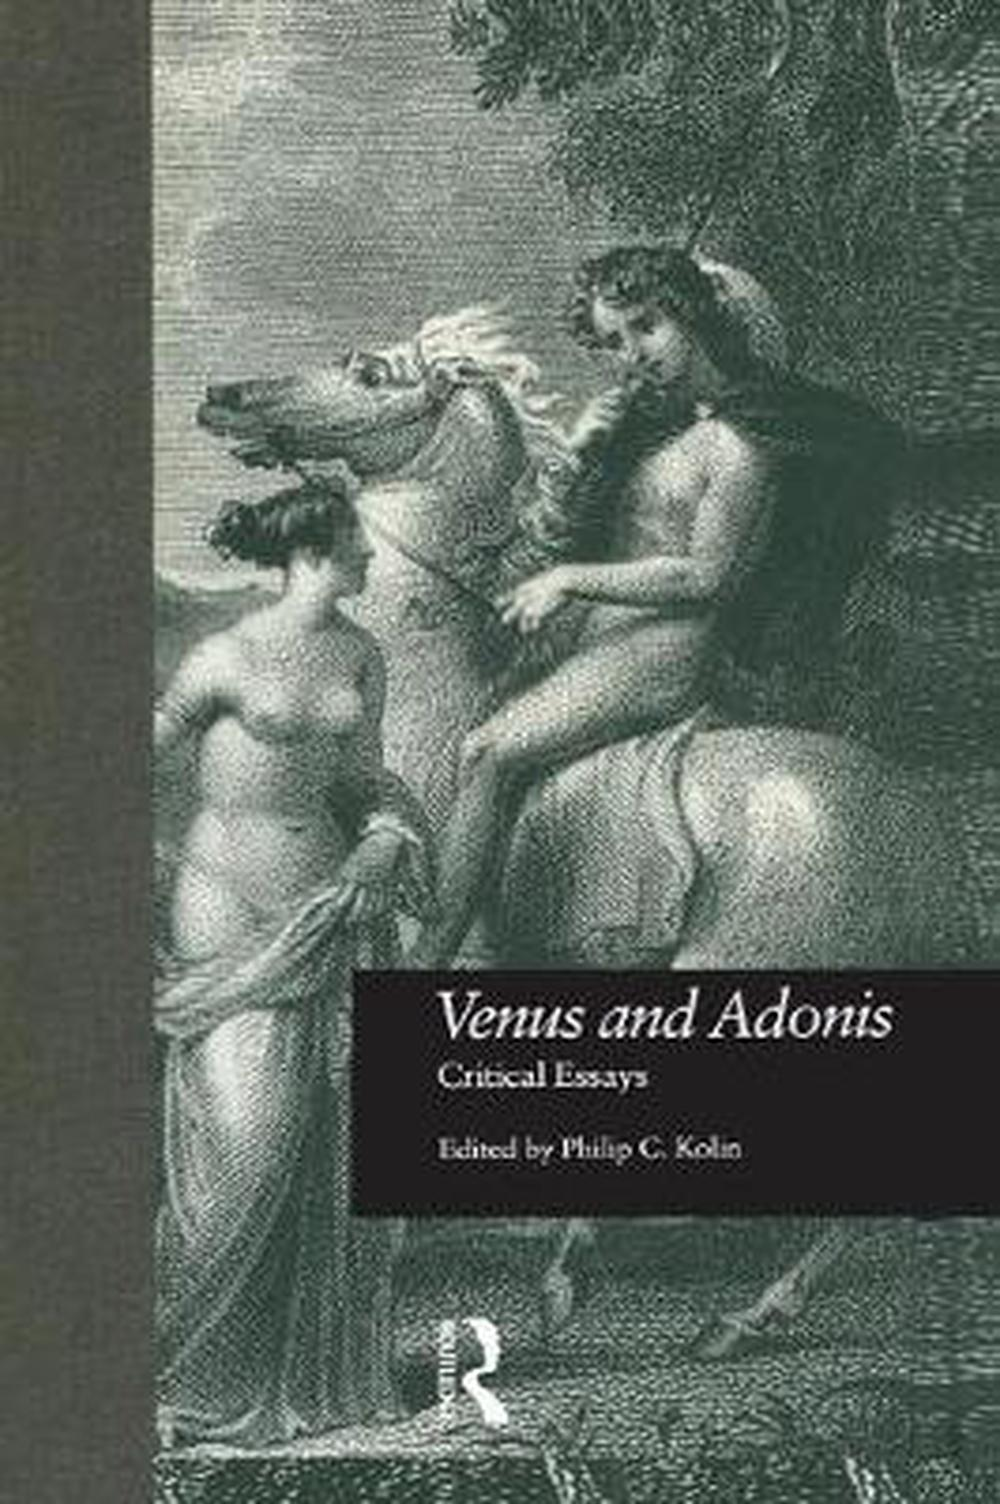 ovid and shakespeare's venus and adonis Ovid's great poem, metamorphoses, was a source of life long fascination and inspiration for shakespeare he drew on its great myths throughout his career: in early works like venus and adonis and titus andronicus, works of the middle period like a midsummer night's dream and twelfth night, and late plays such as the winter's tale and the tempest.